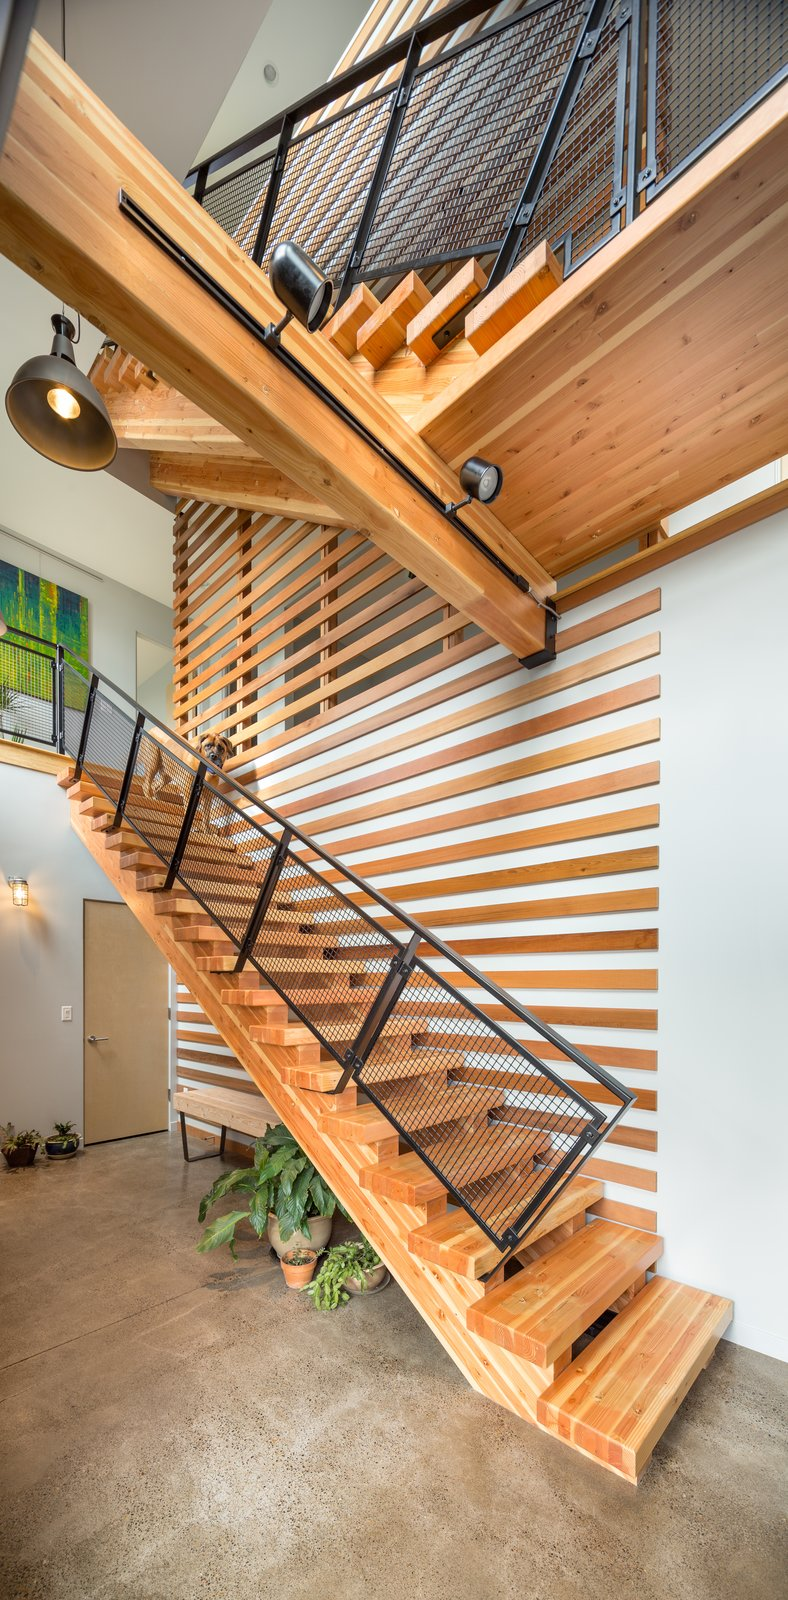 Staircase, Wood Tread, and Metal Railing Vertical stair shaft  Panavista Hill House by Steelhead Architecture